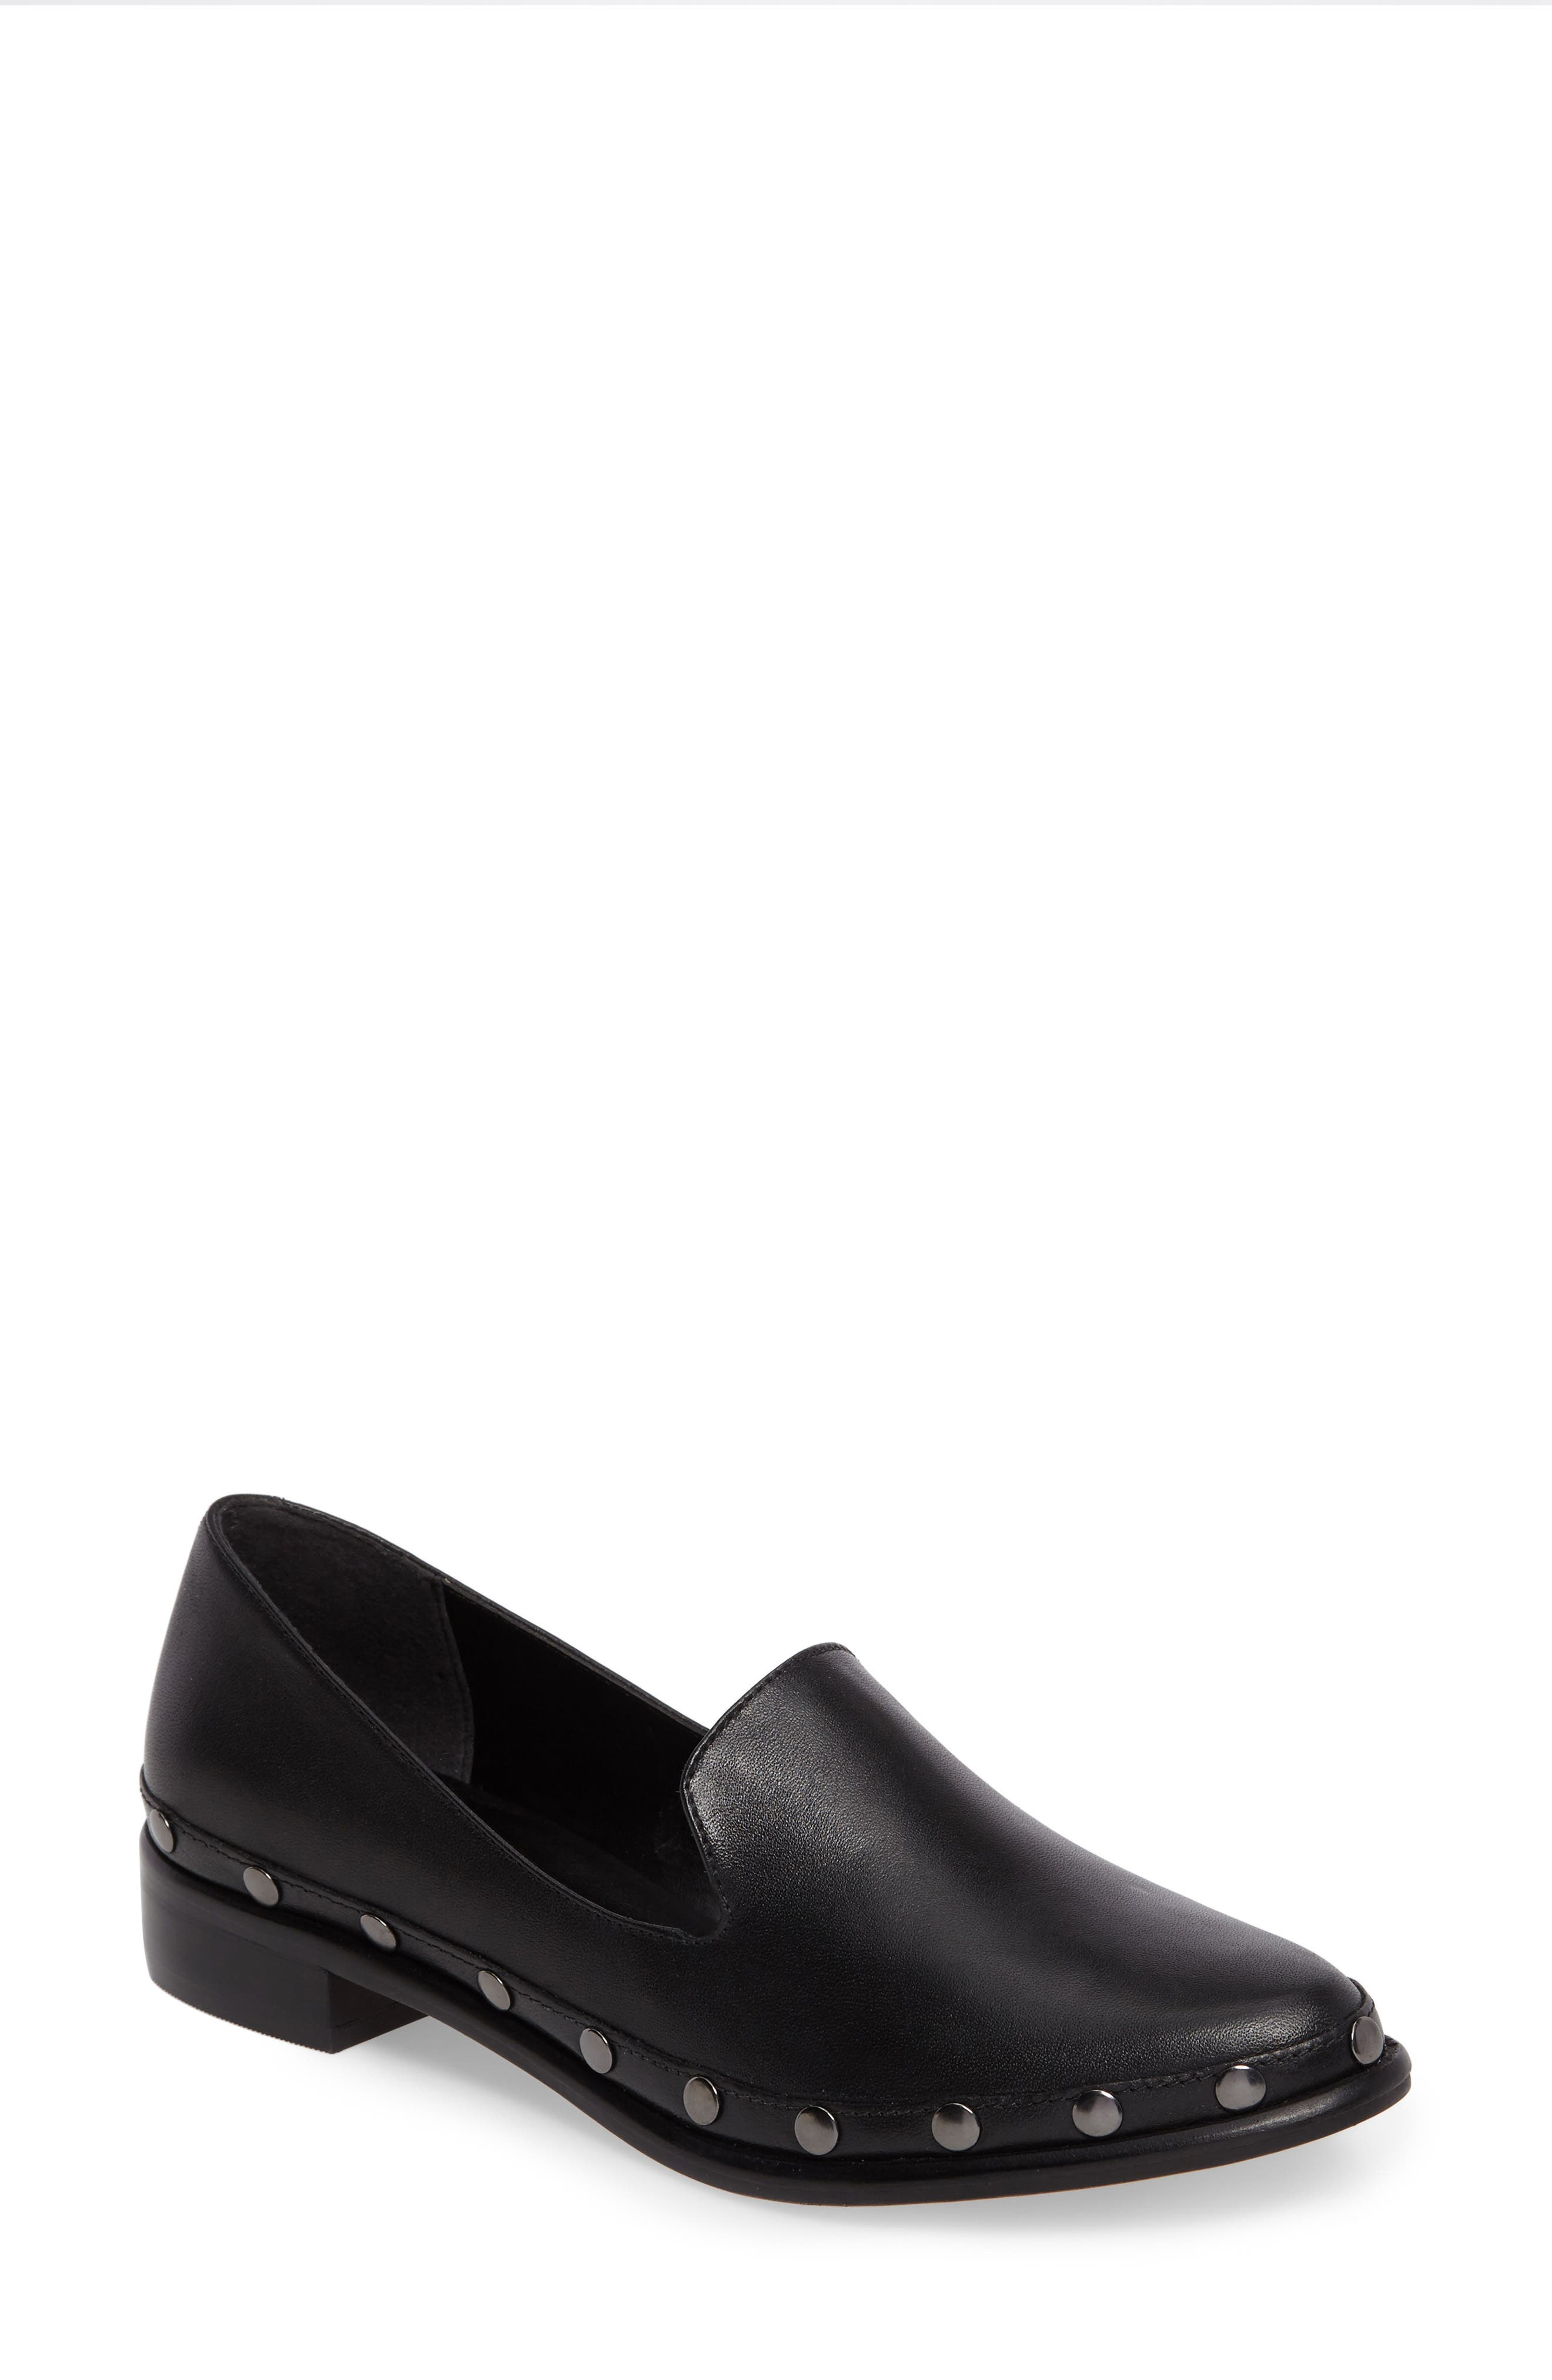 M4D3 Oceania Loafer,                             Main thumbnail 1, color,                             001